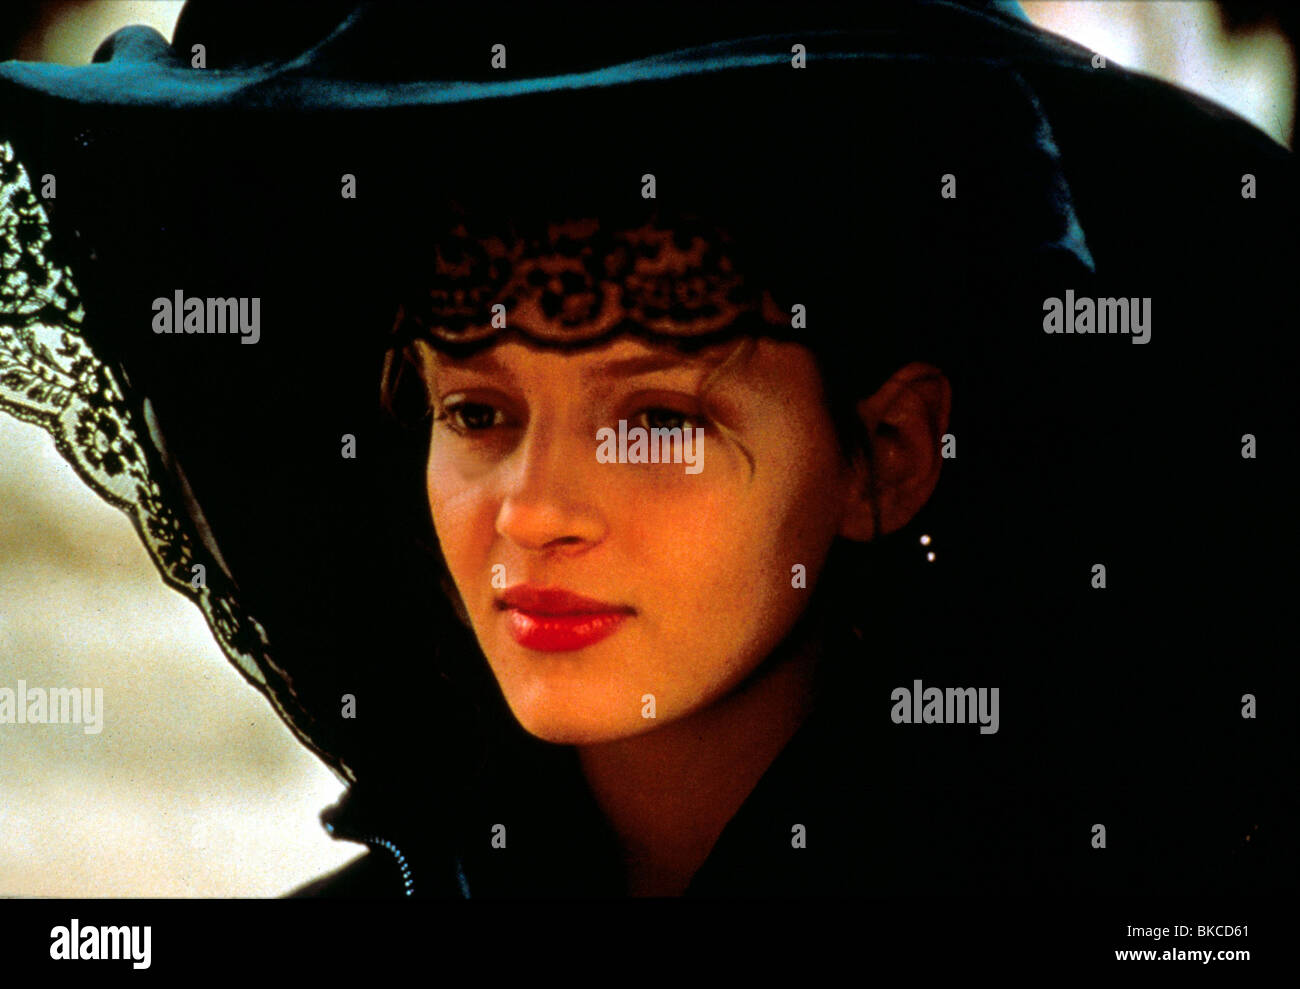 THE ADVENTURES OF BARON MUNCHAUSEN (1988) UMA THURMAN ABM 001 - Stock Image